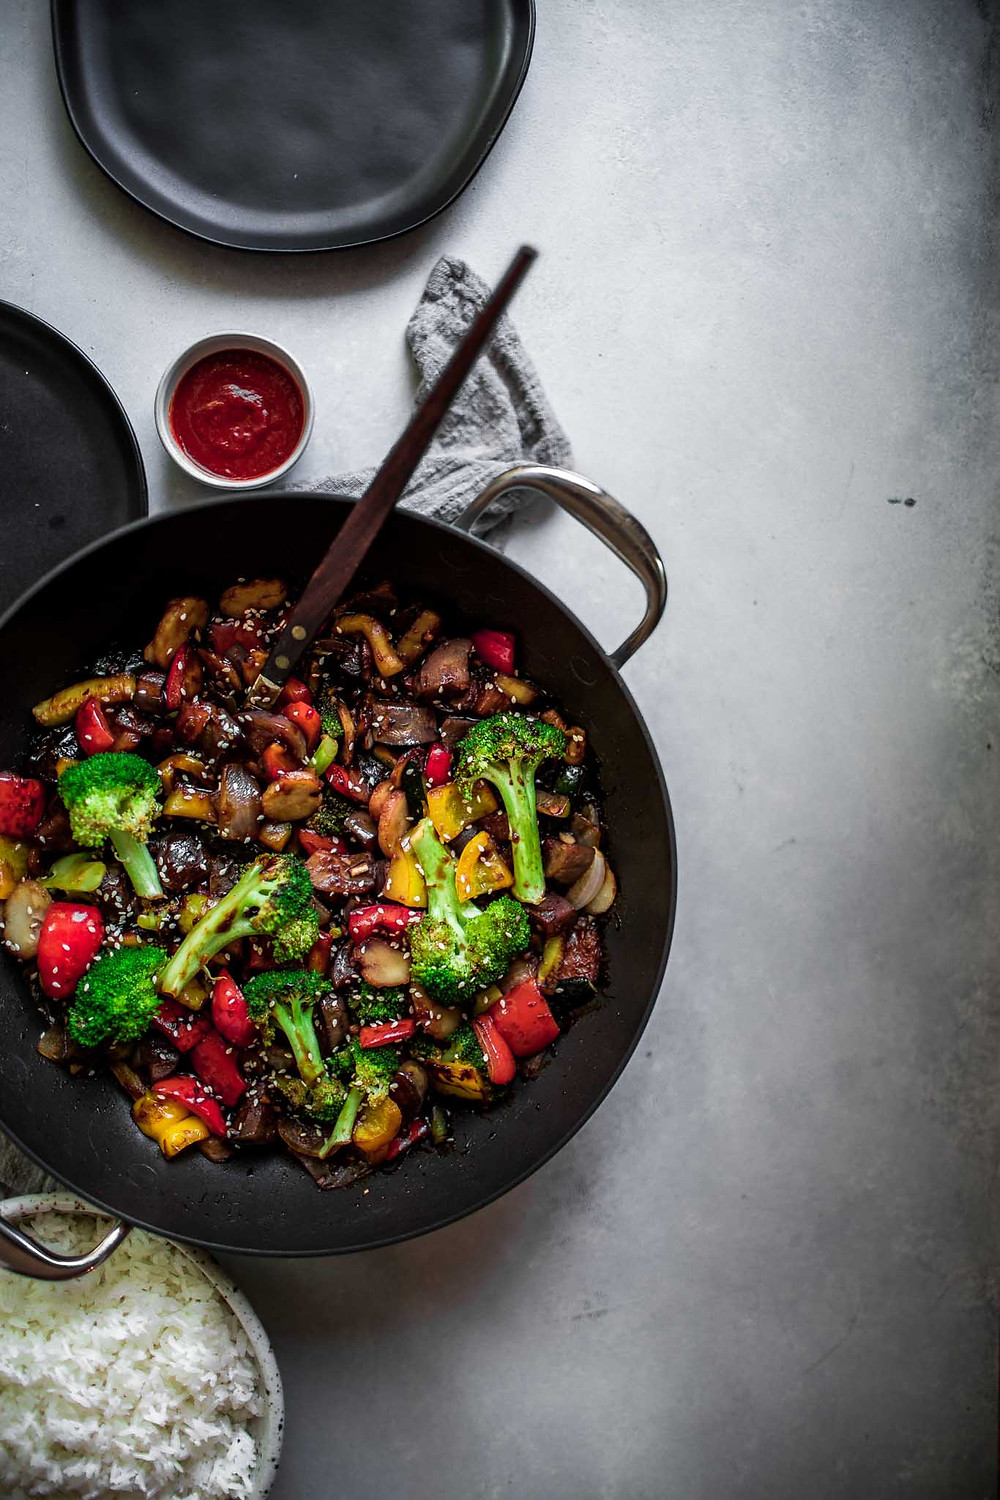 veggie stir-fry in a pan with sauce on the side